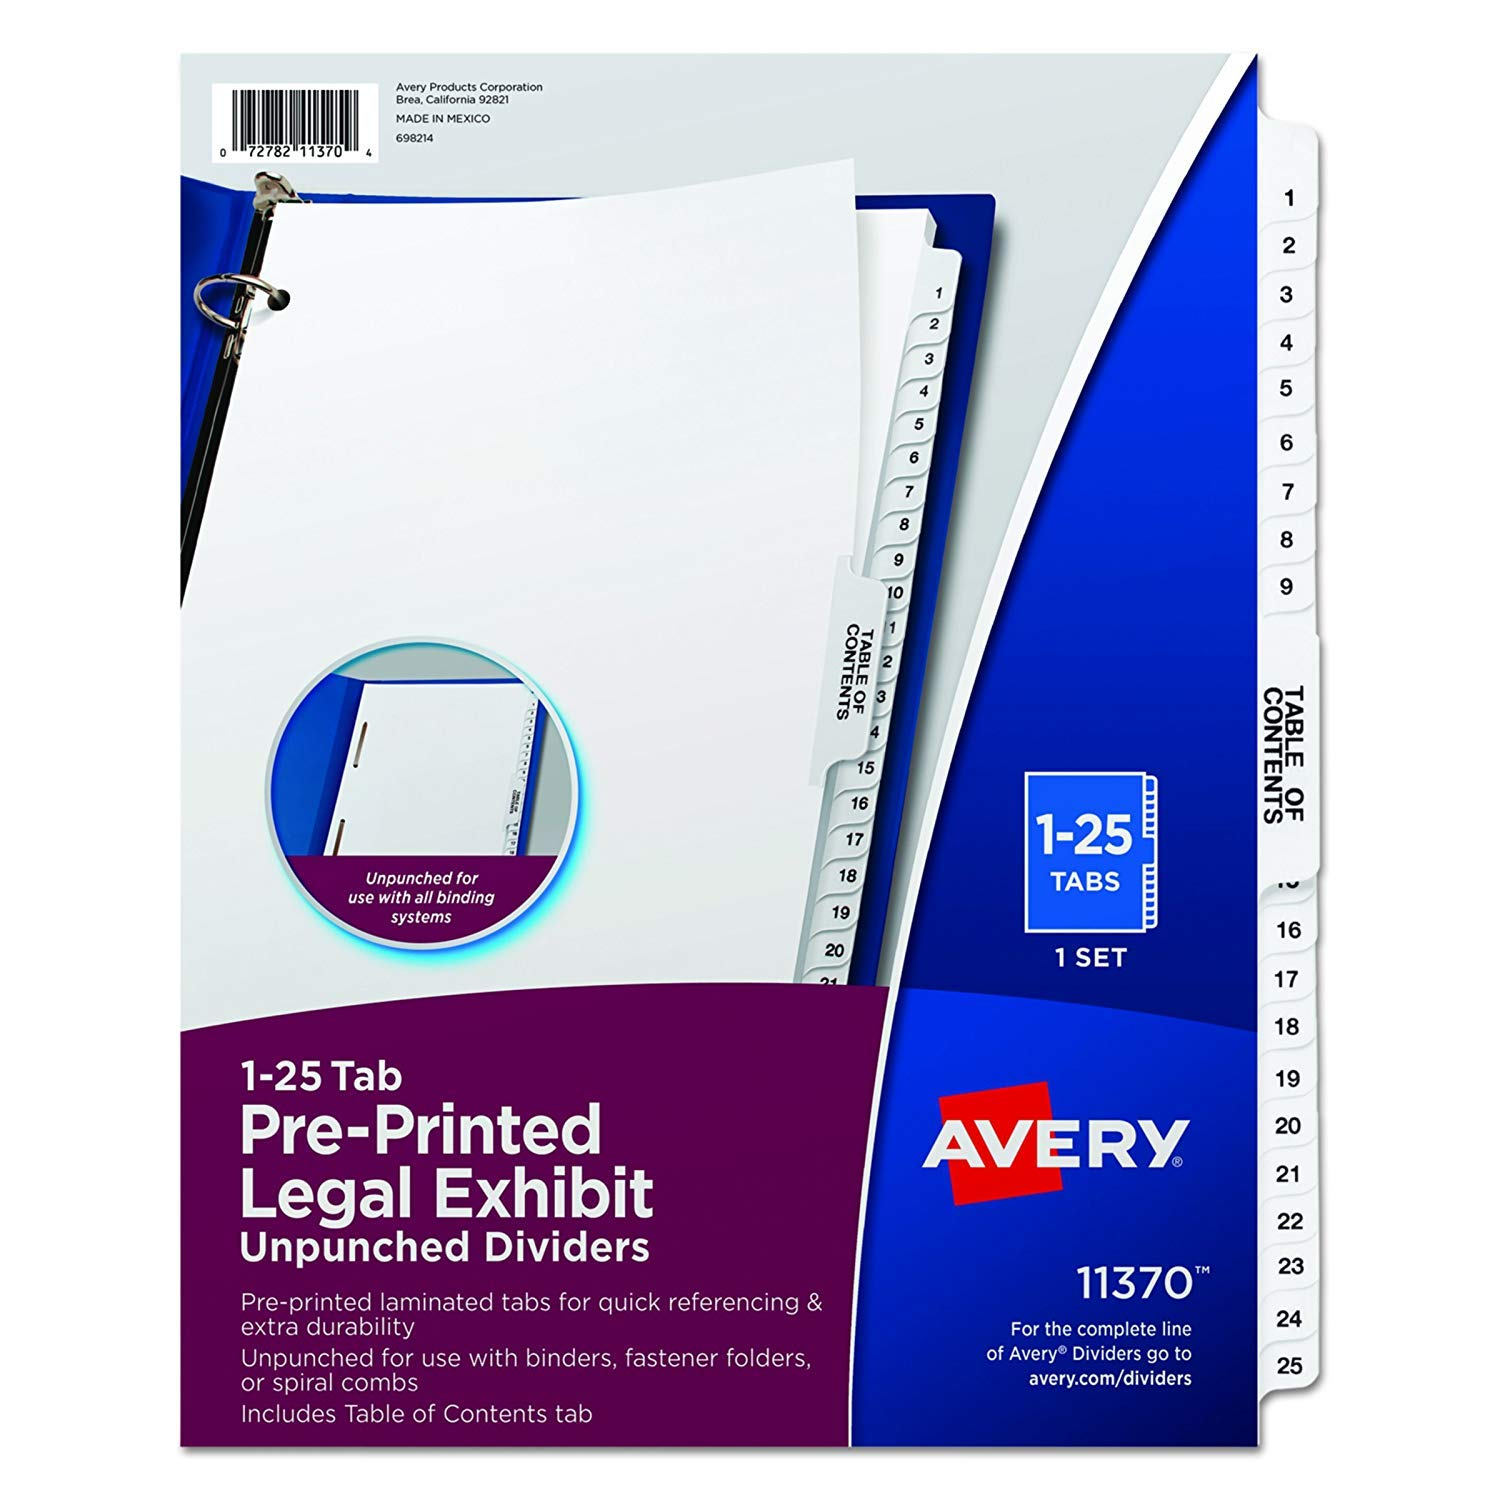 Premium Collated Legal Exhibit Divider Set, Avery Style, 1-25 and Table of Contents, Side Tab, 8.5 x 11 Inches, 20 Set (11370) by Avery